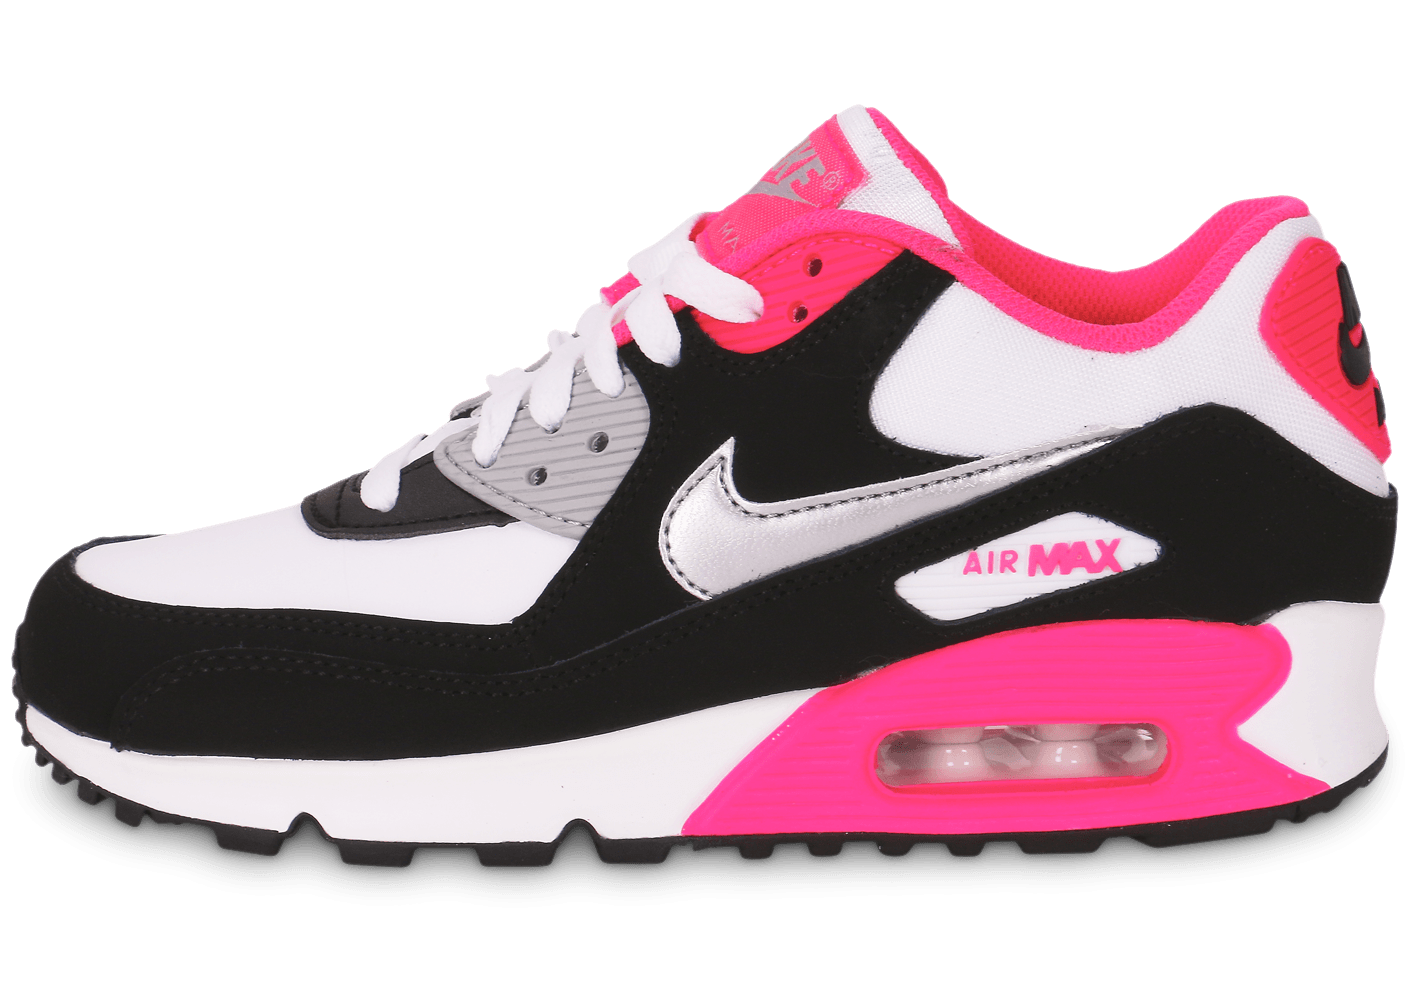 nike air max 90 junior blanc noir rose chaussures chaussures chausport. Black Bedroom Furniture Sets. Home Design Ideas